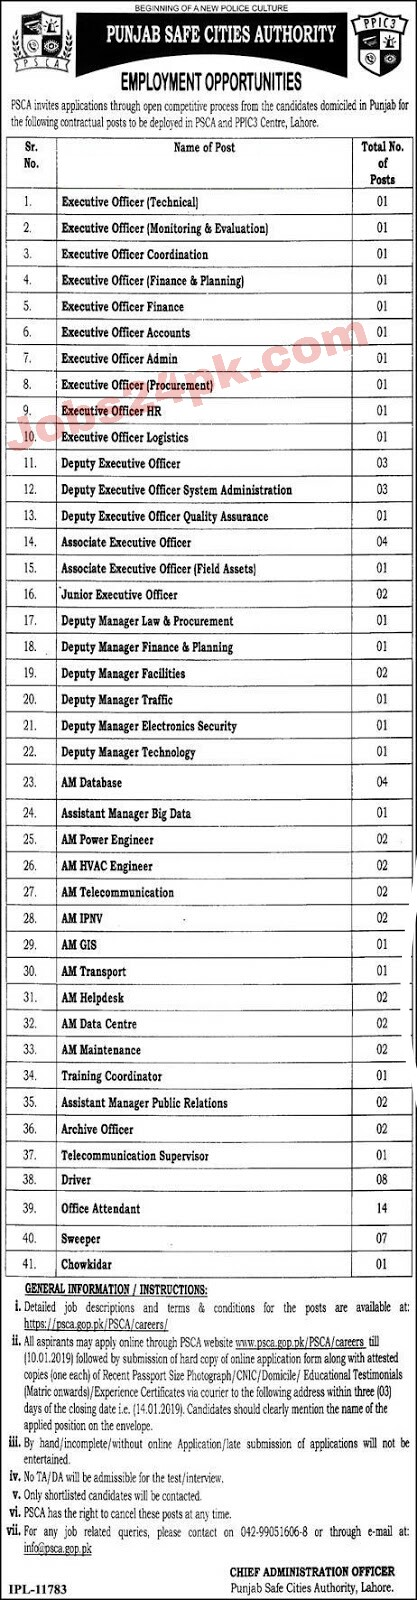 Punjab police jobs-Punjab Safe City Authority (PSCA) New Jobs 2019 - Online Apply-2019 latest jobs-pujnab police jobs apply online